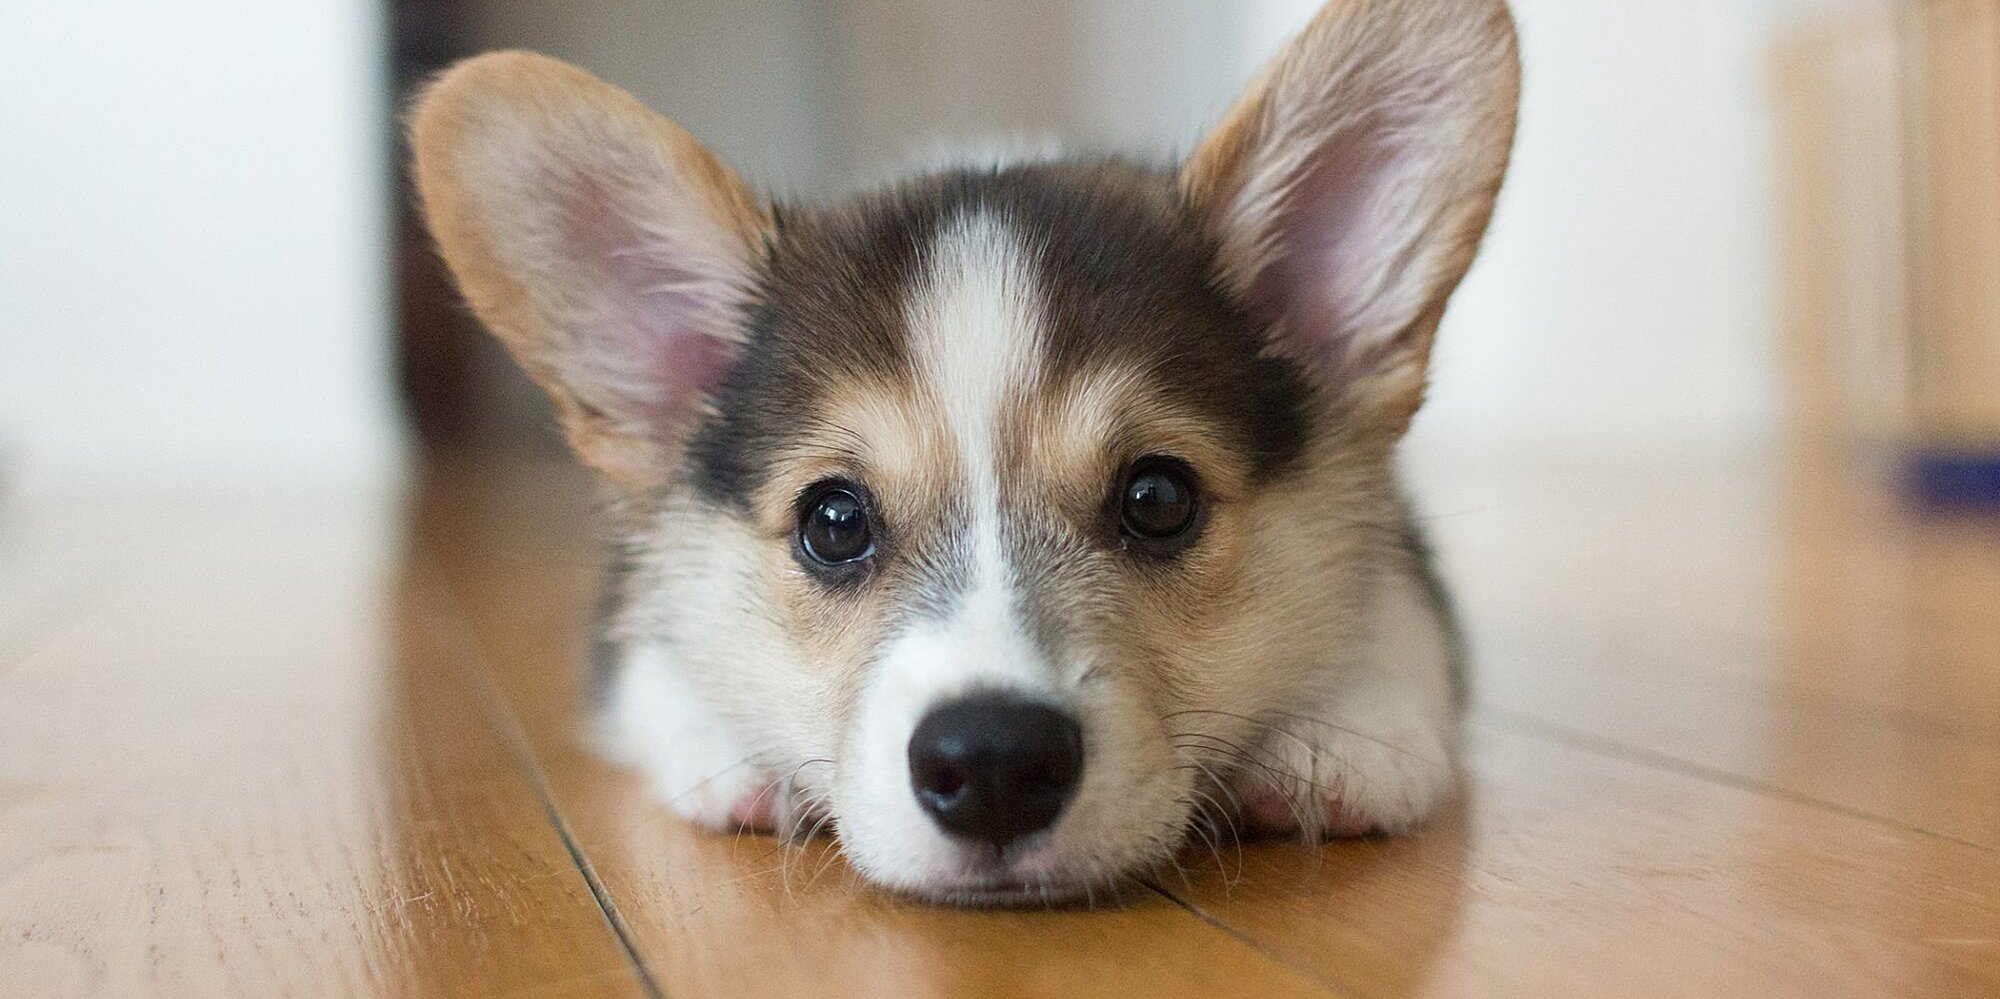 It's Corgi Week. Here Are Our 9 Best Stories About the Breed